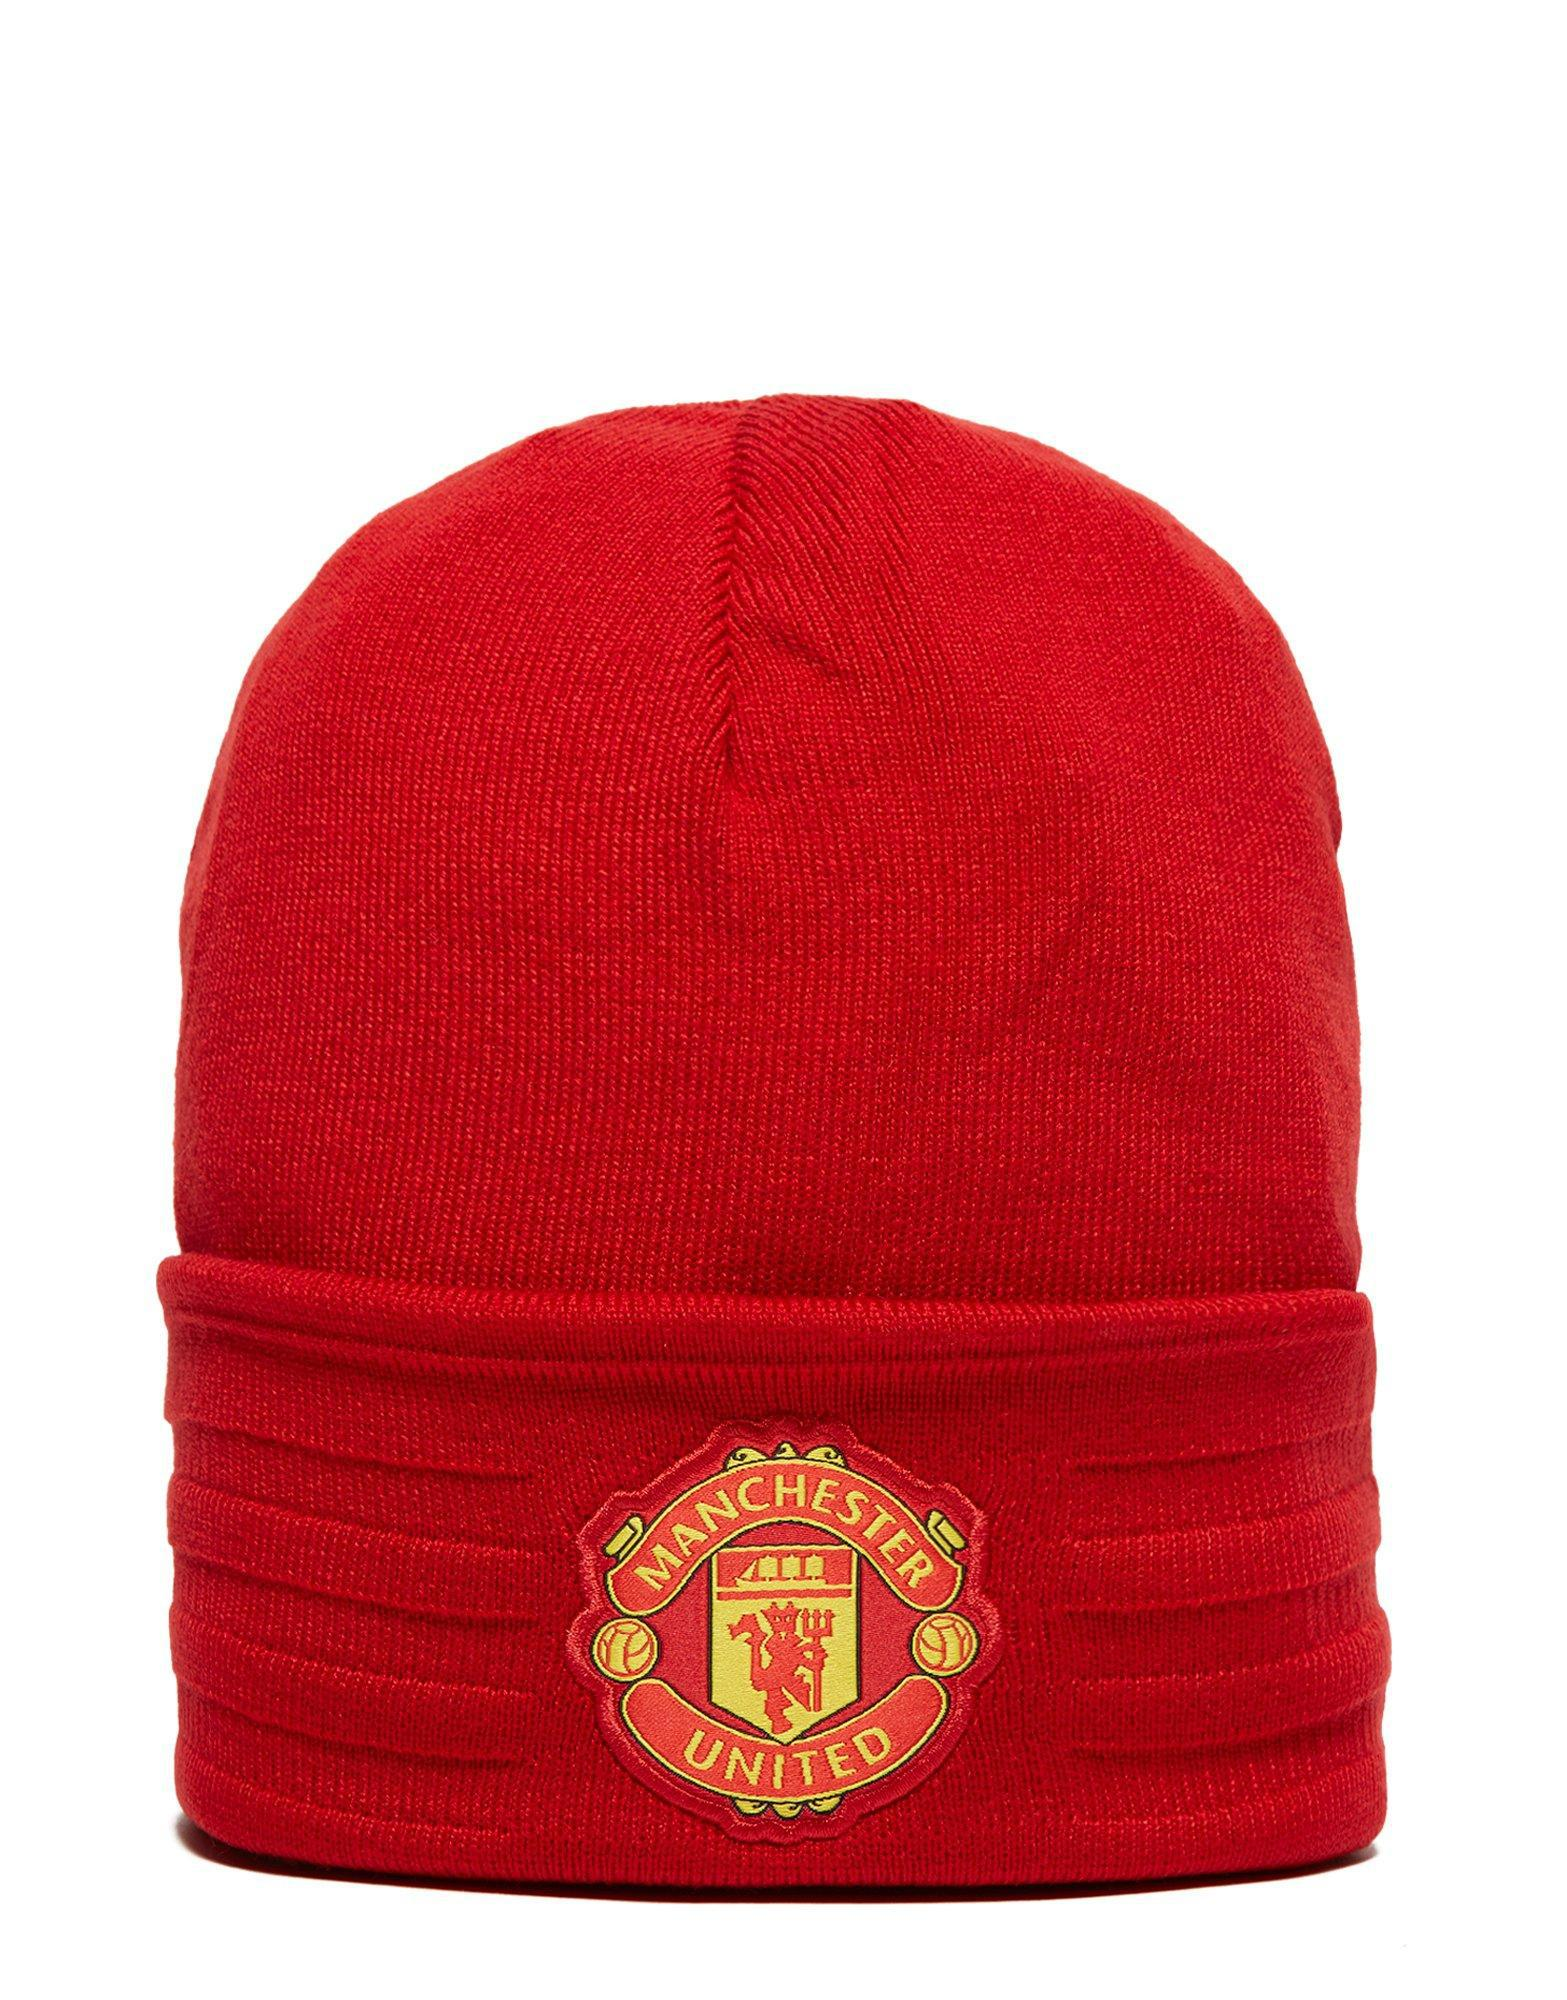 competitive price 52a08 038ab ... discount lyst adidas originals manchester united 3 stripes wooly hat in  red ede24 80a1d ...